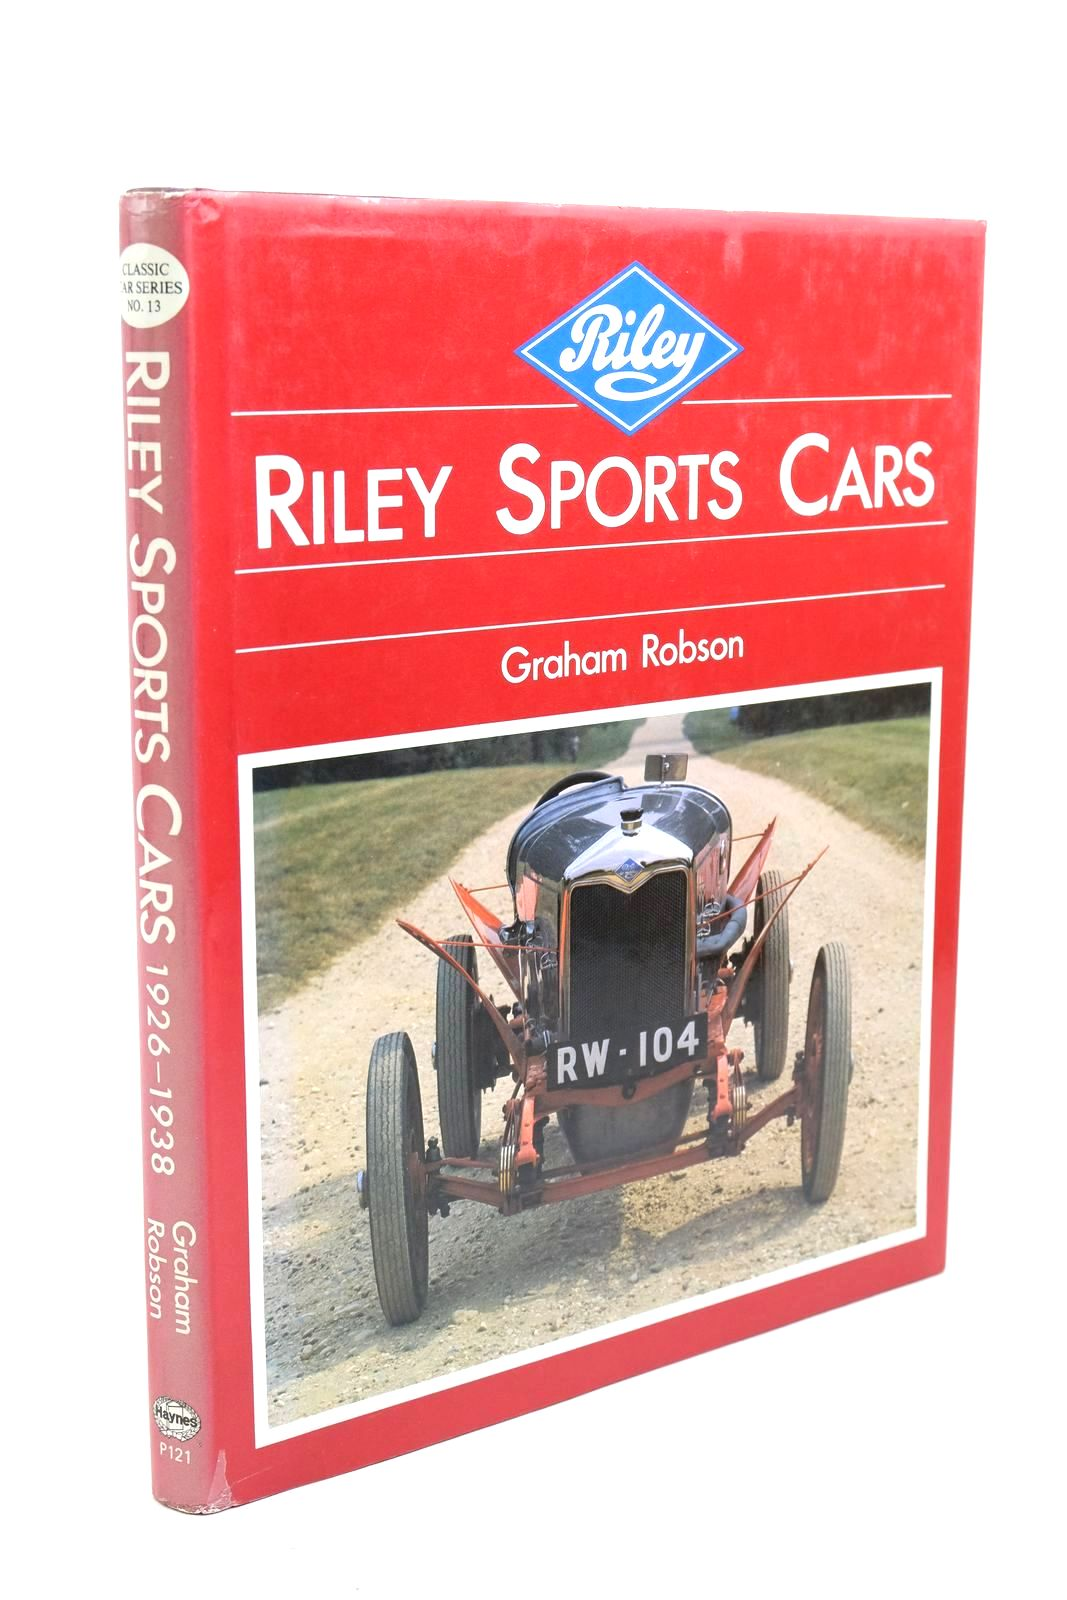 Photo of RILEY SPORTS CARS 1926-1938 written by Robson, Graham published by The Oxford Illustrated Press, Haynes (STOCK CODE: 1321240)  for sale by Stella & Rose's Books